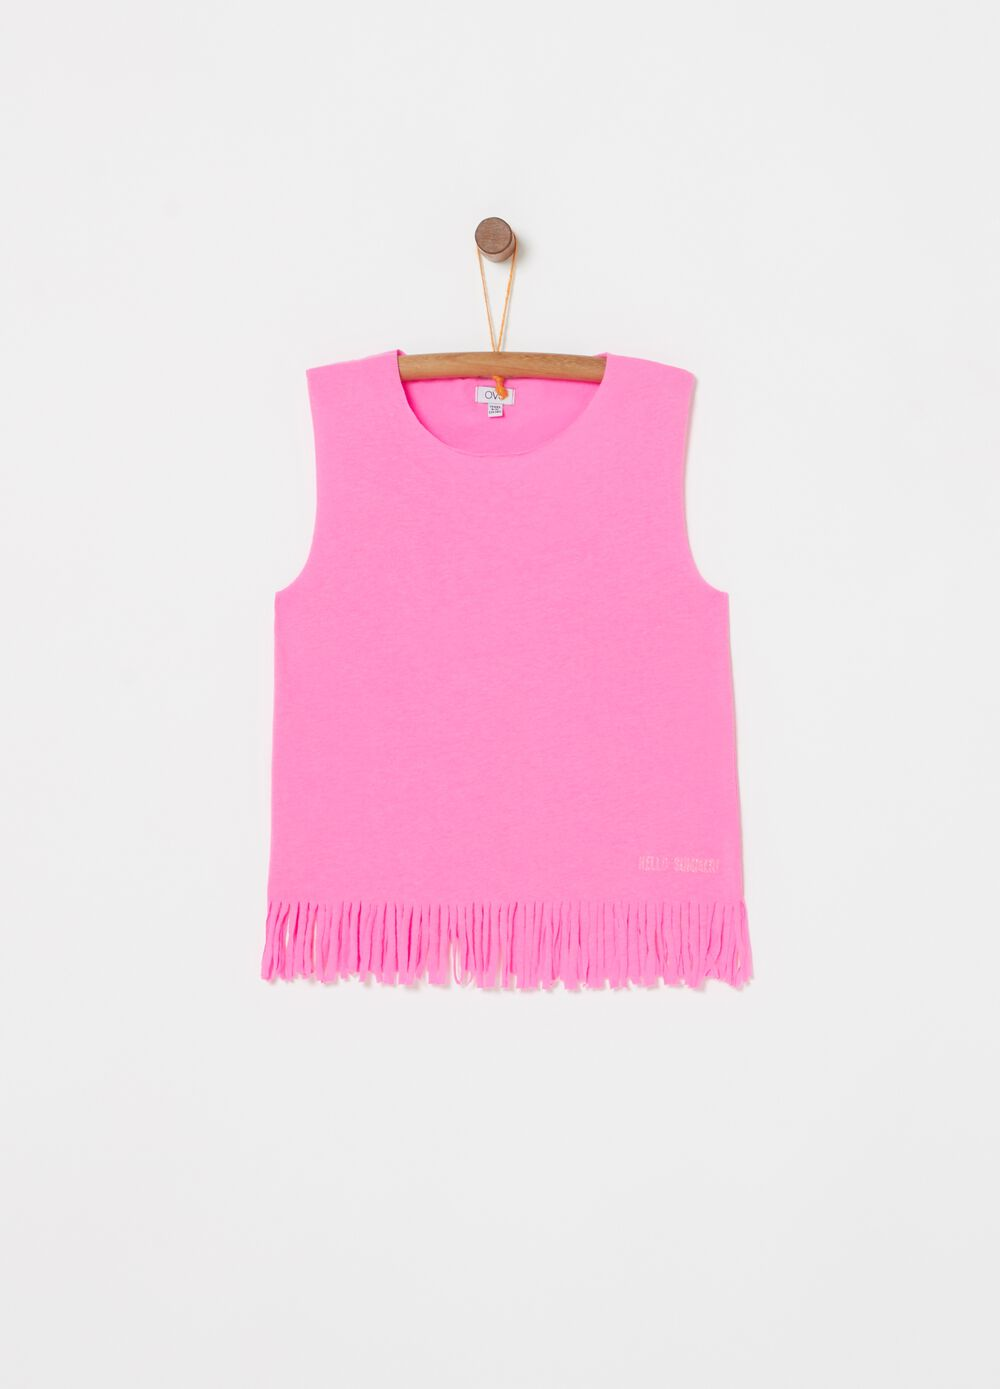 100% cotton top with fringed hem